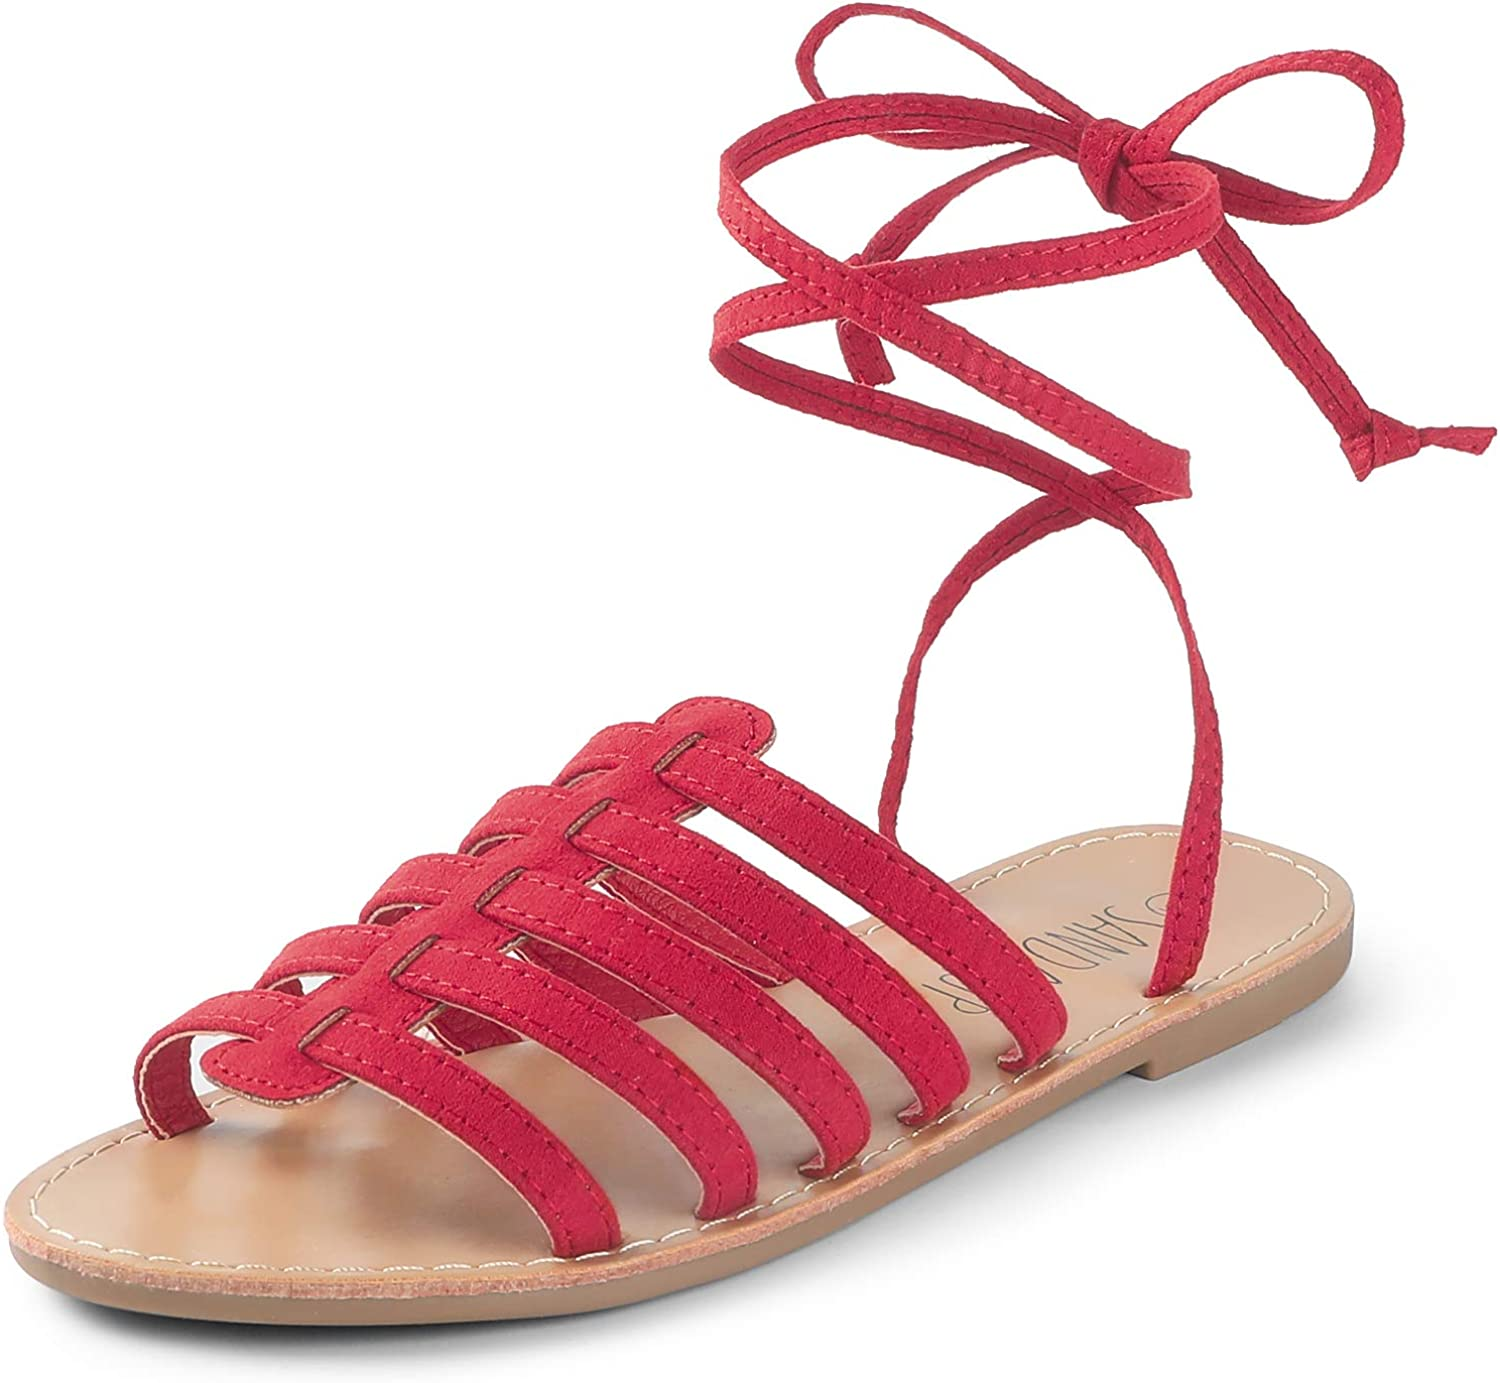 Details about  /Sandals Shoes Lace Beach Gladiator Solid Color Up  Women  Casual  Summer